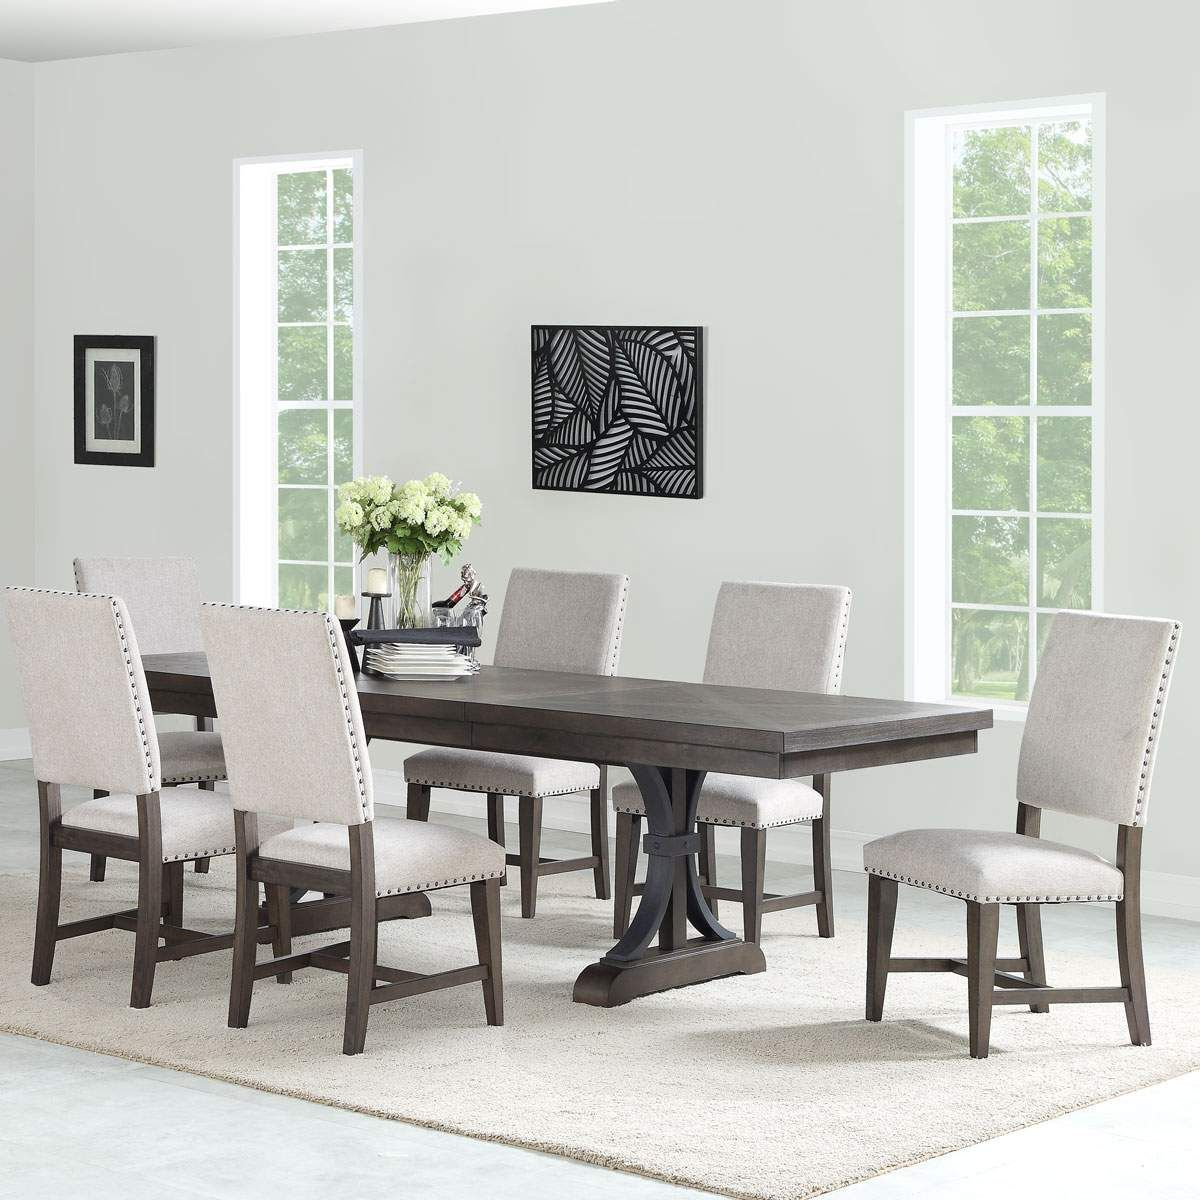 Furniture, Dining Table, Dining Room Sets Throughout Current Transitional 6 Seating Casual Dining Tables (View 9 of 25)